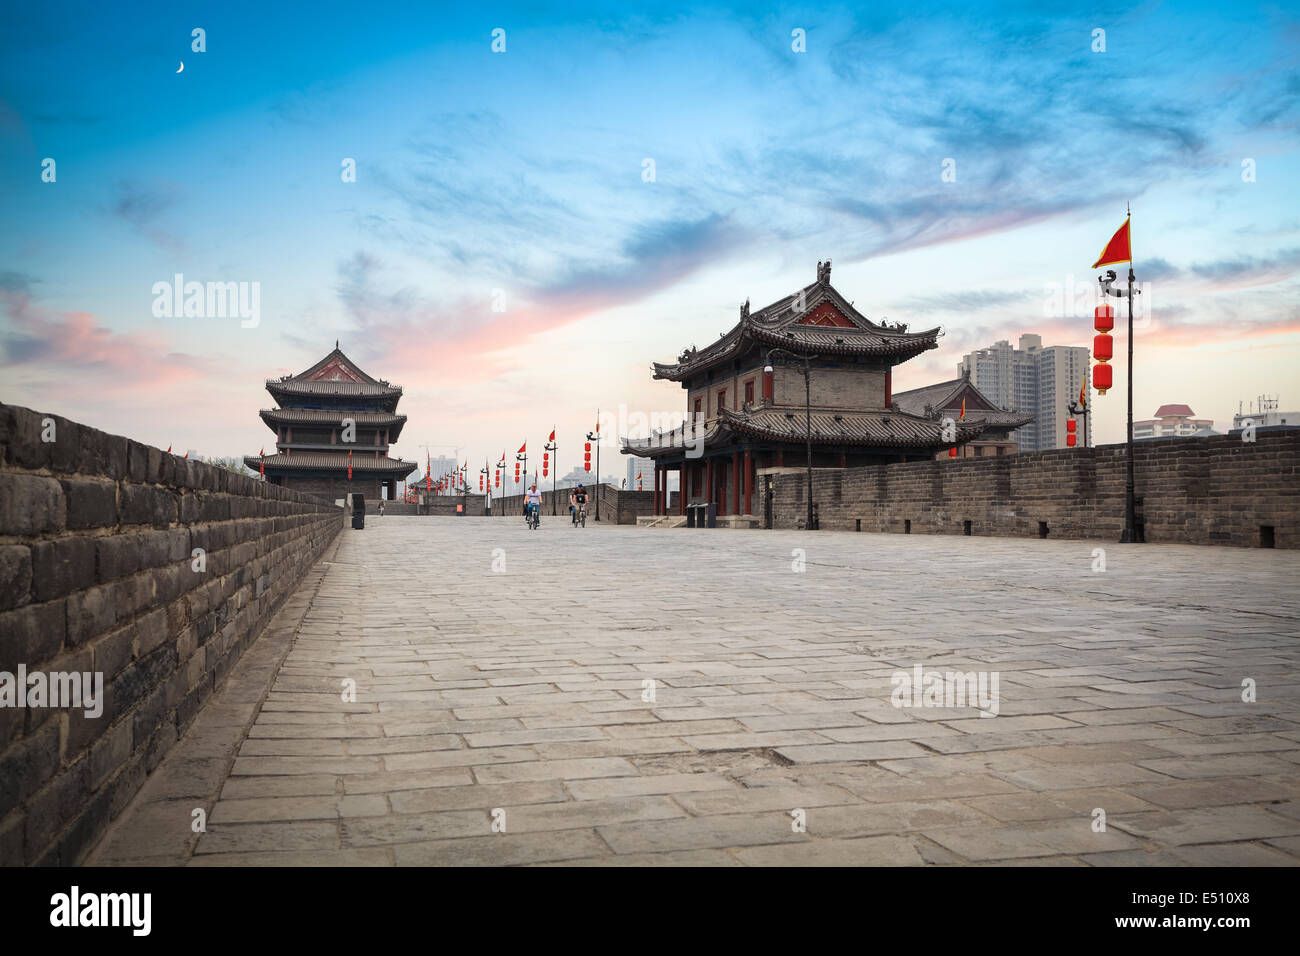 xi 'an ancient city wall scenery Stock Photo